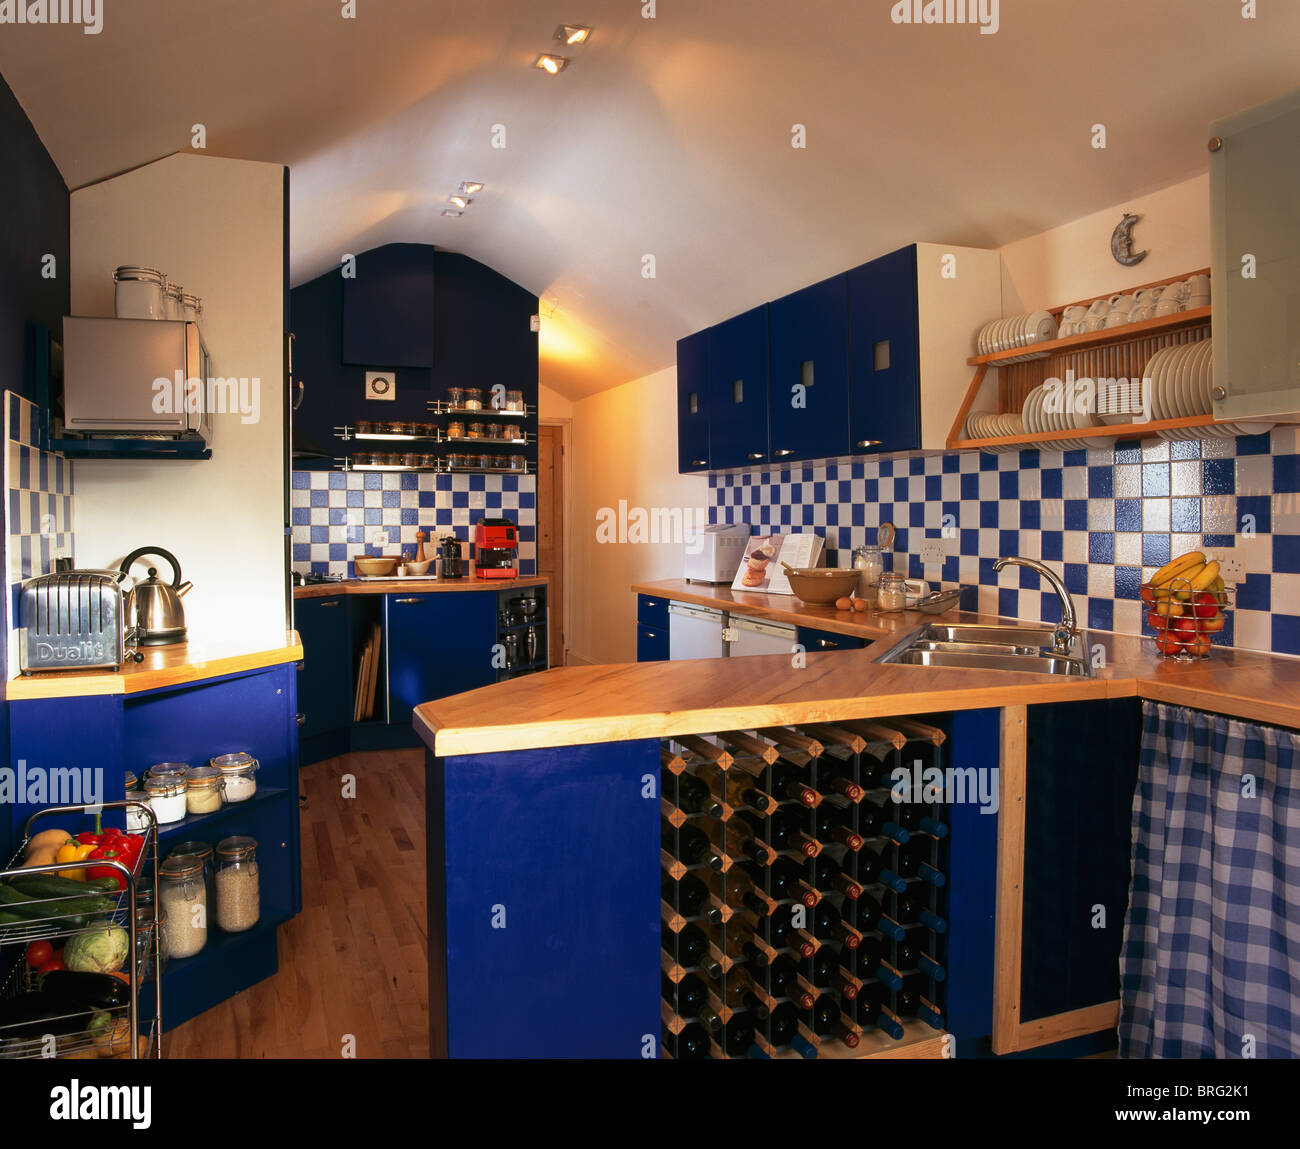 Blue And White Tiles Stockfotos & Blue And White Tiles Bilder - Alamy